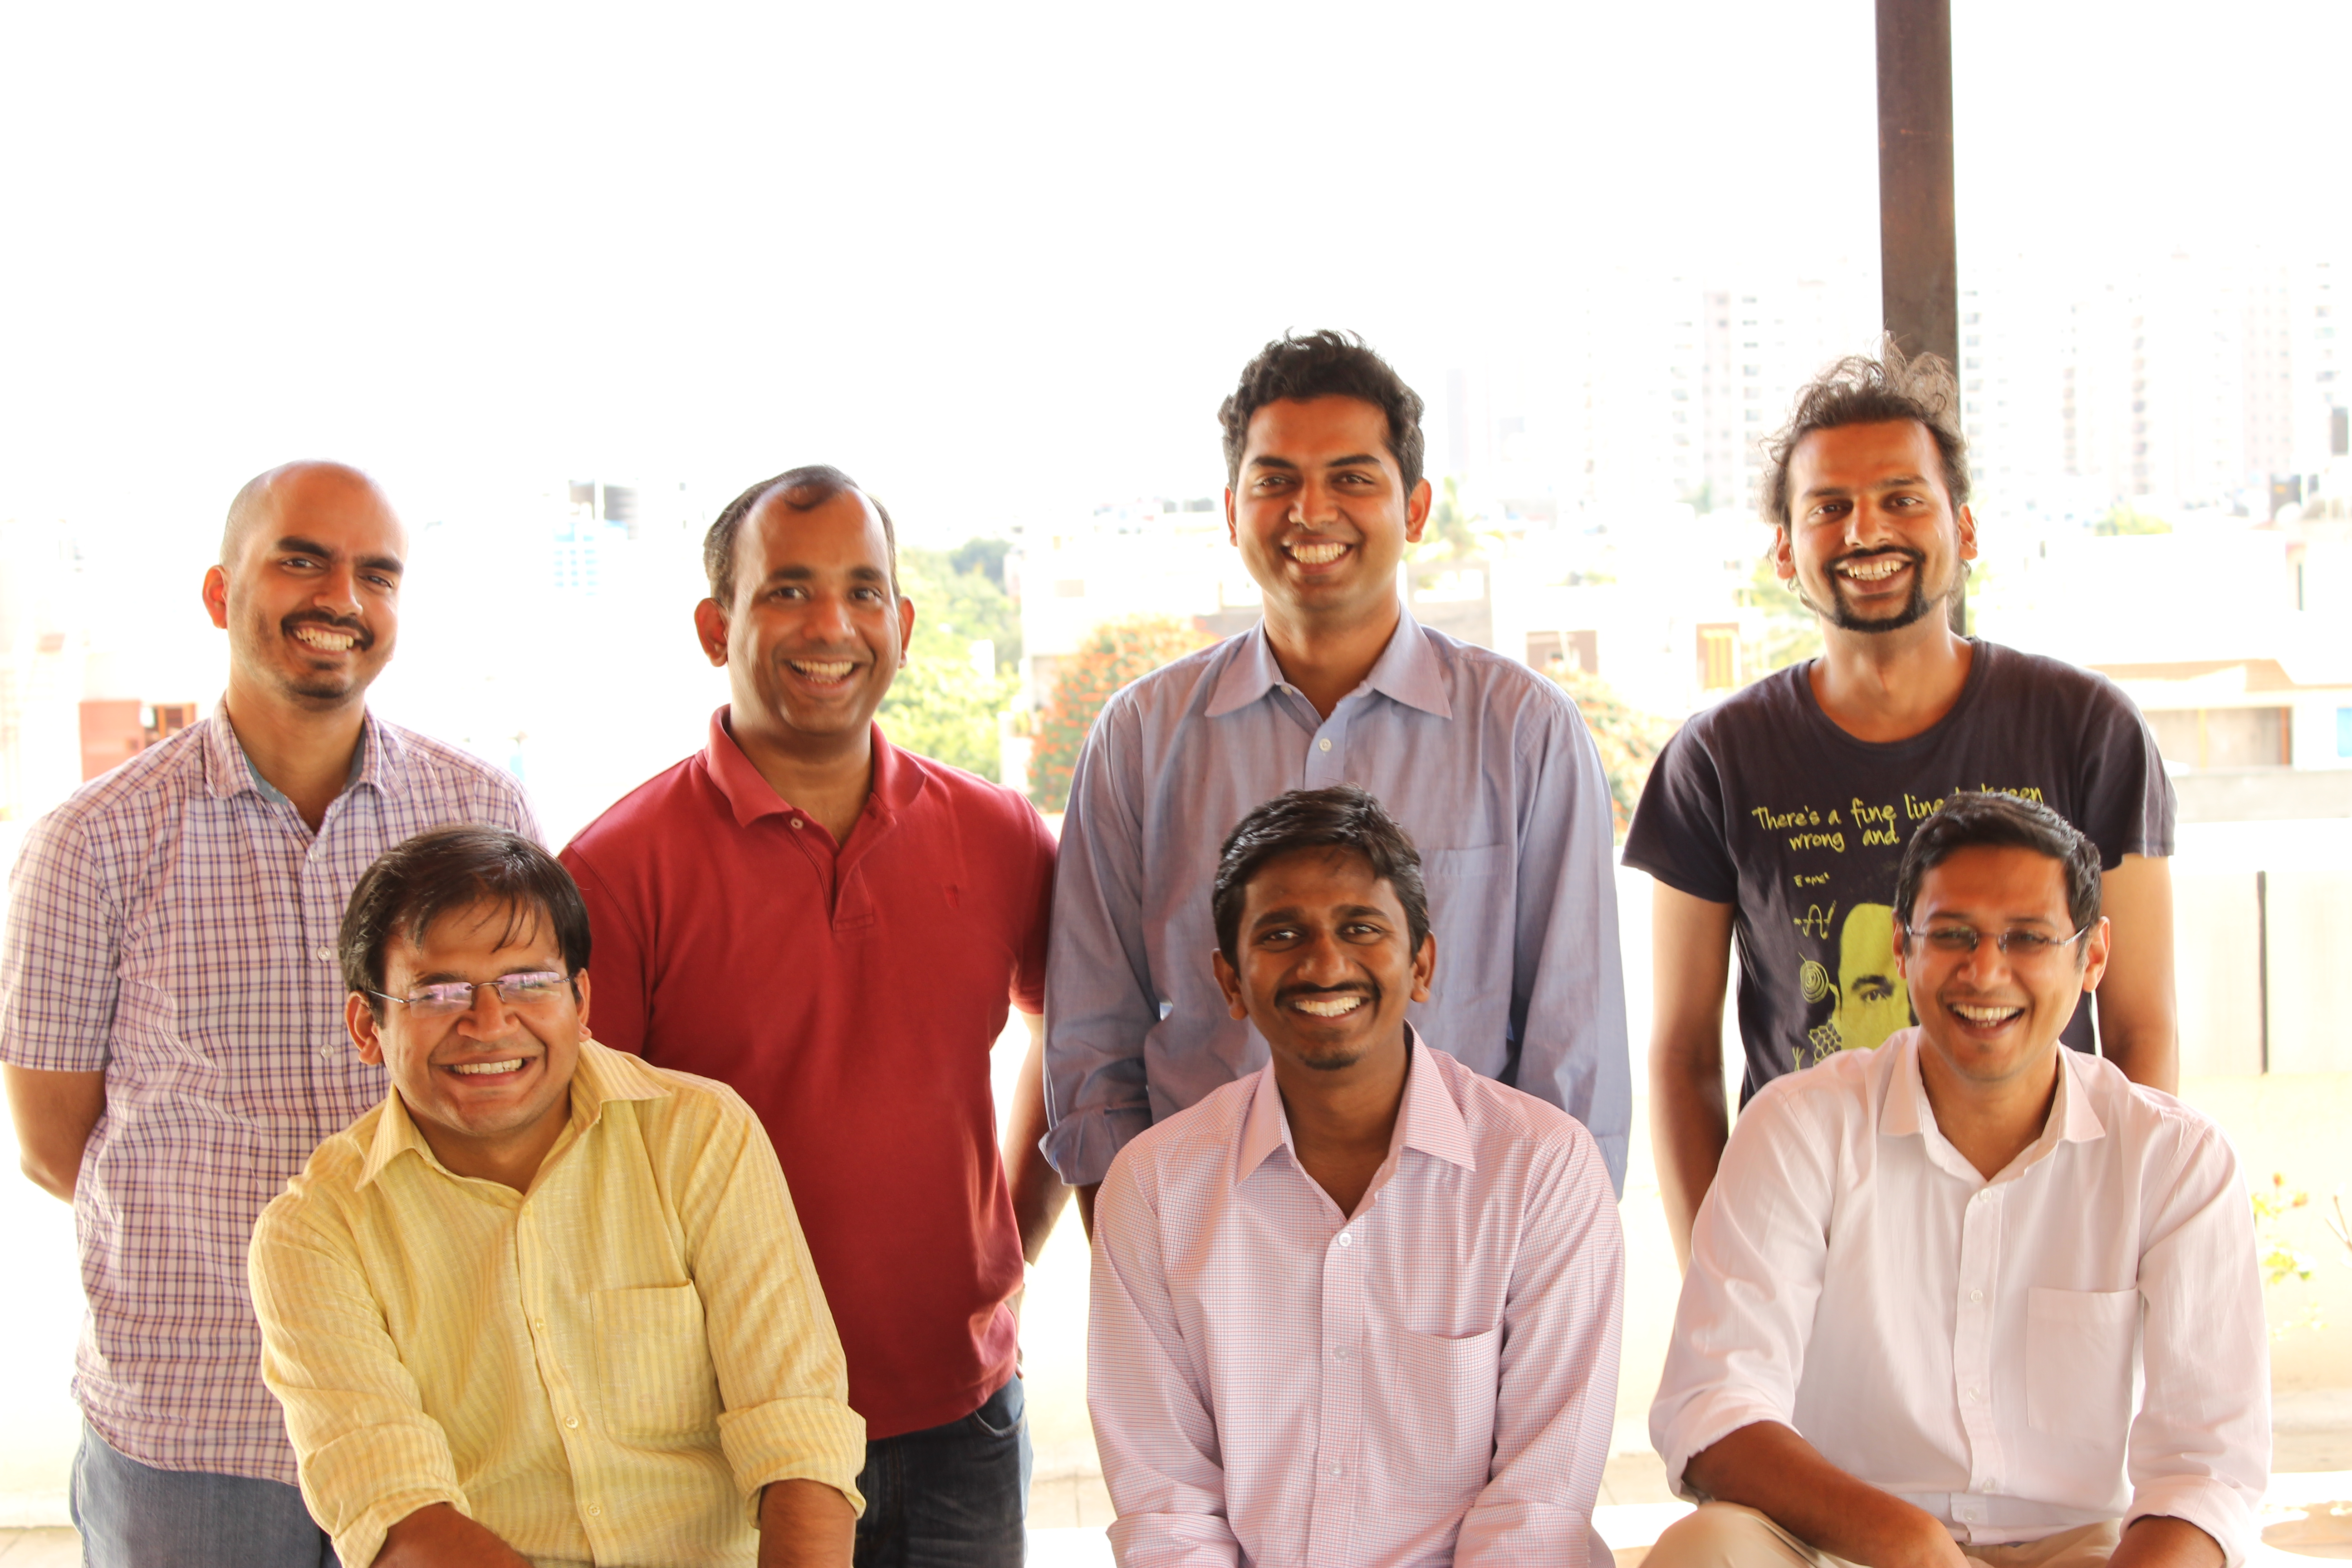 Goodbox's co-founders Charan Shetty, Abey Zachariah, Nithin Chandra, Mahesh Herle (top row, left to right); Mohit Maheshwari, Anand Kelaginamani, Mayank Bidawatka (bottom row, left ot right).